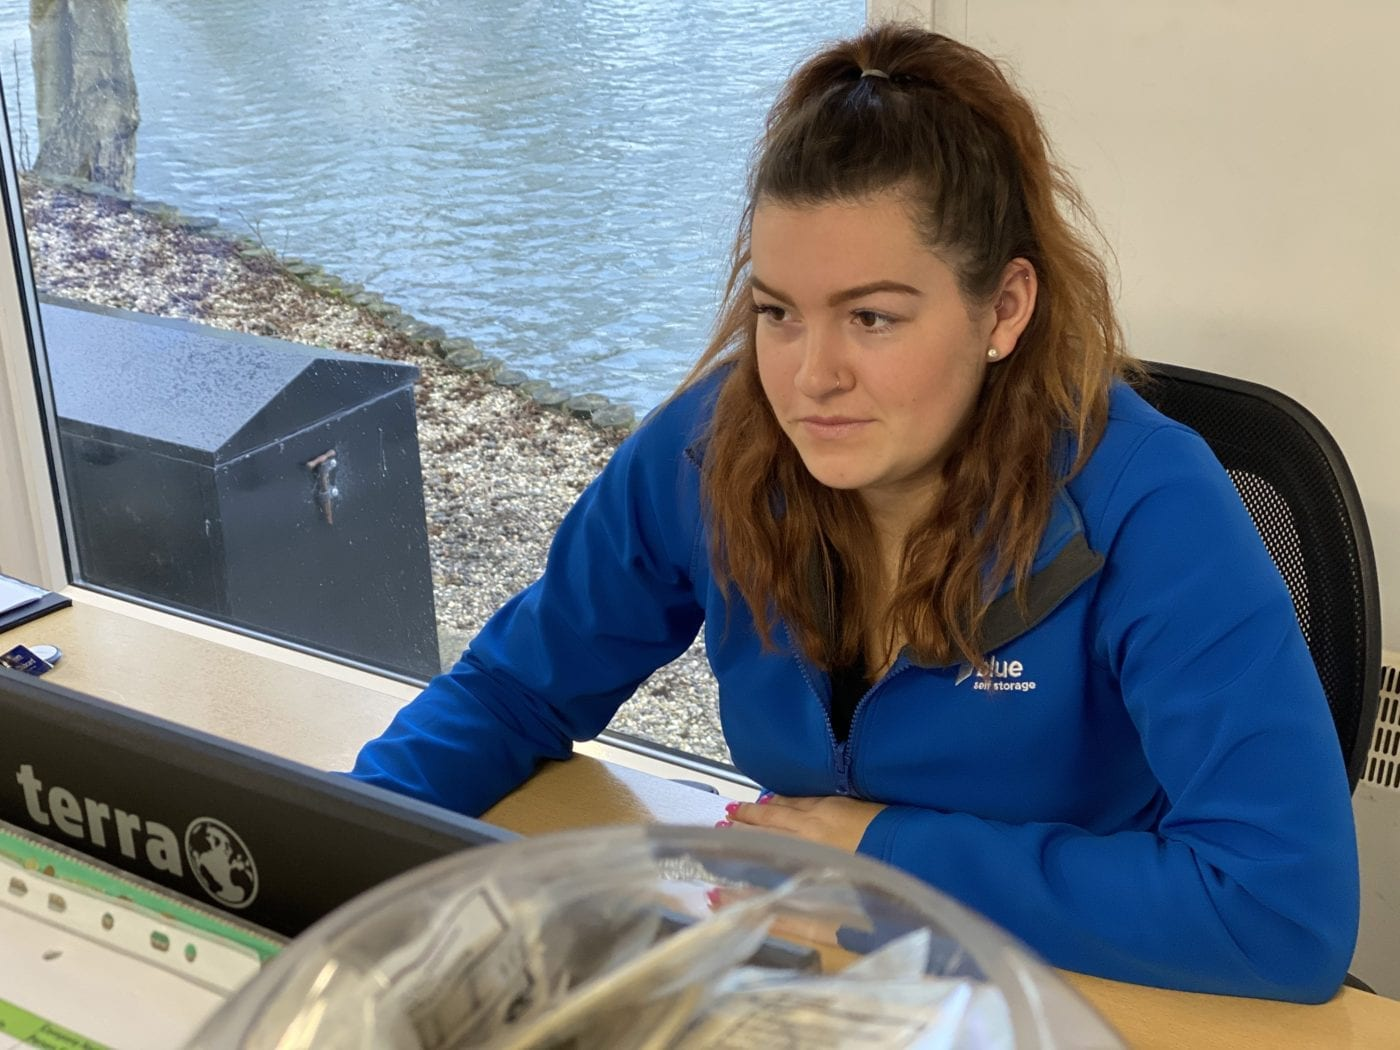 Emily at blue self storage - email or phone to talk about storage for moving house